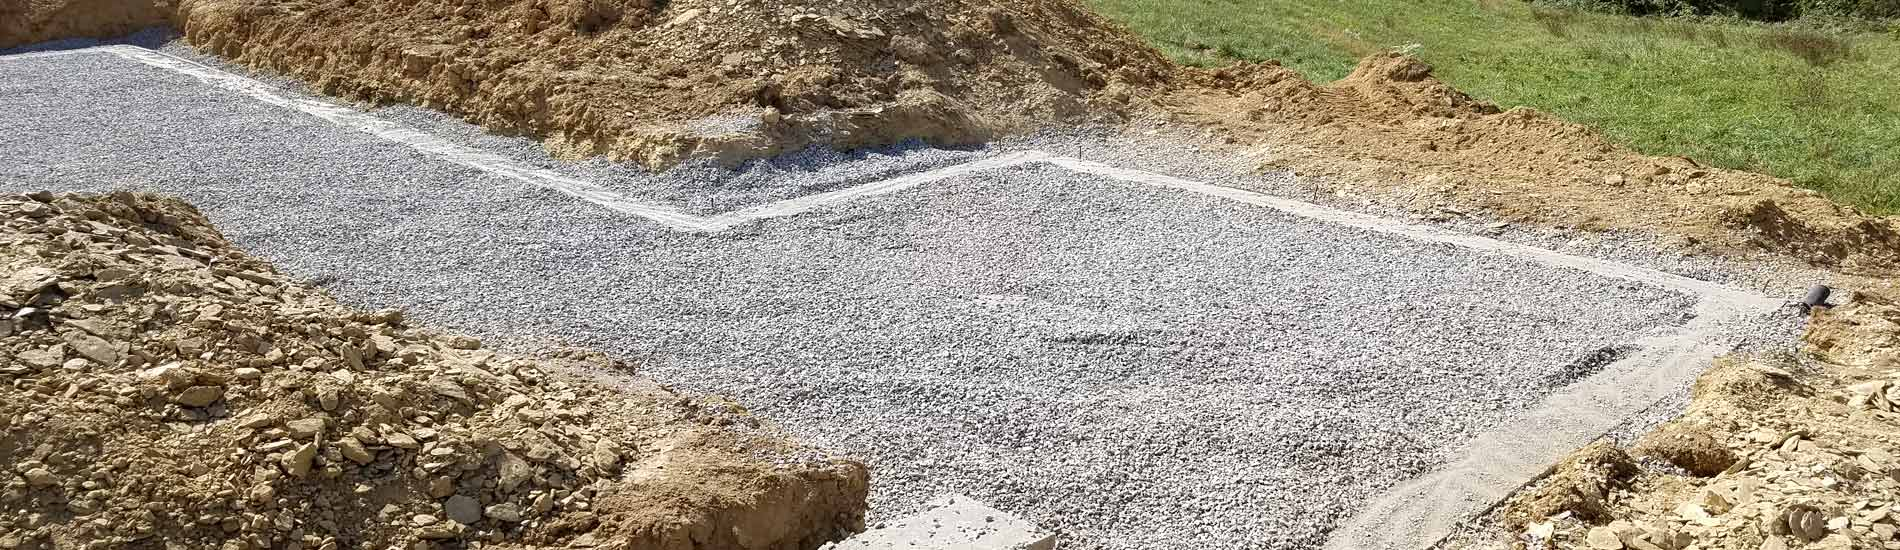 Building pad completion for new home construction